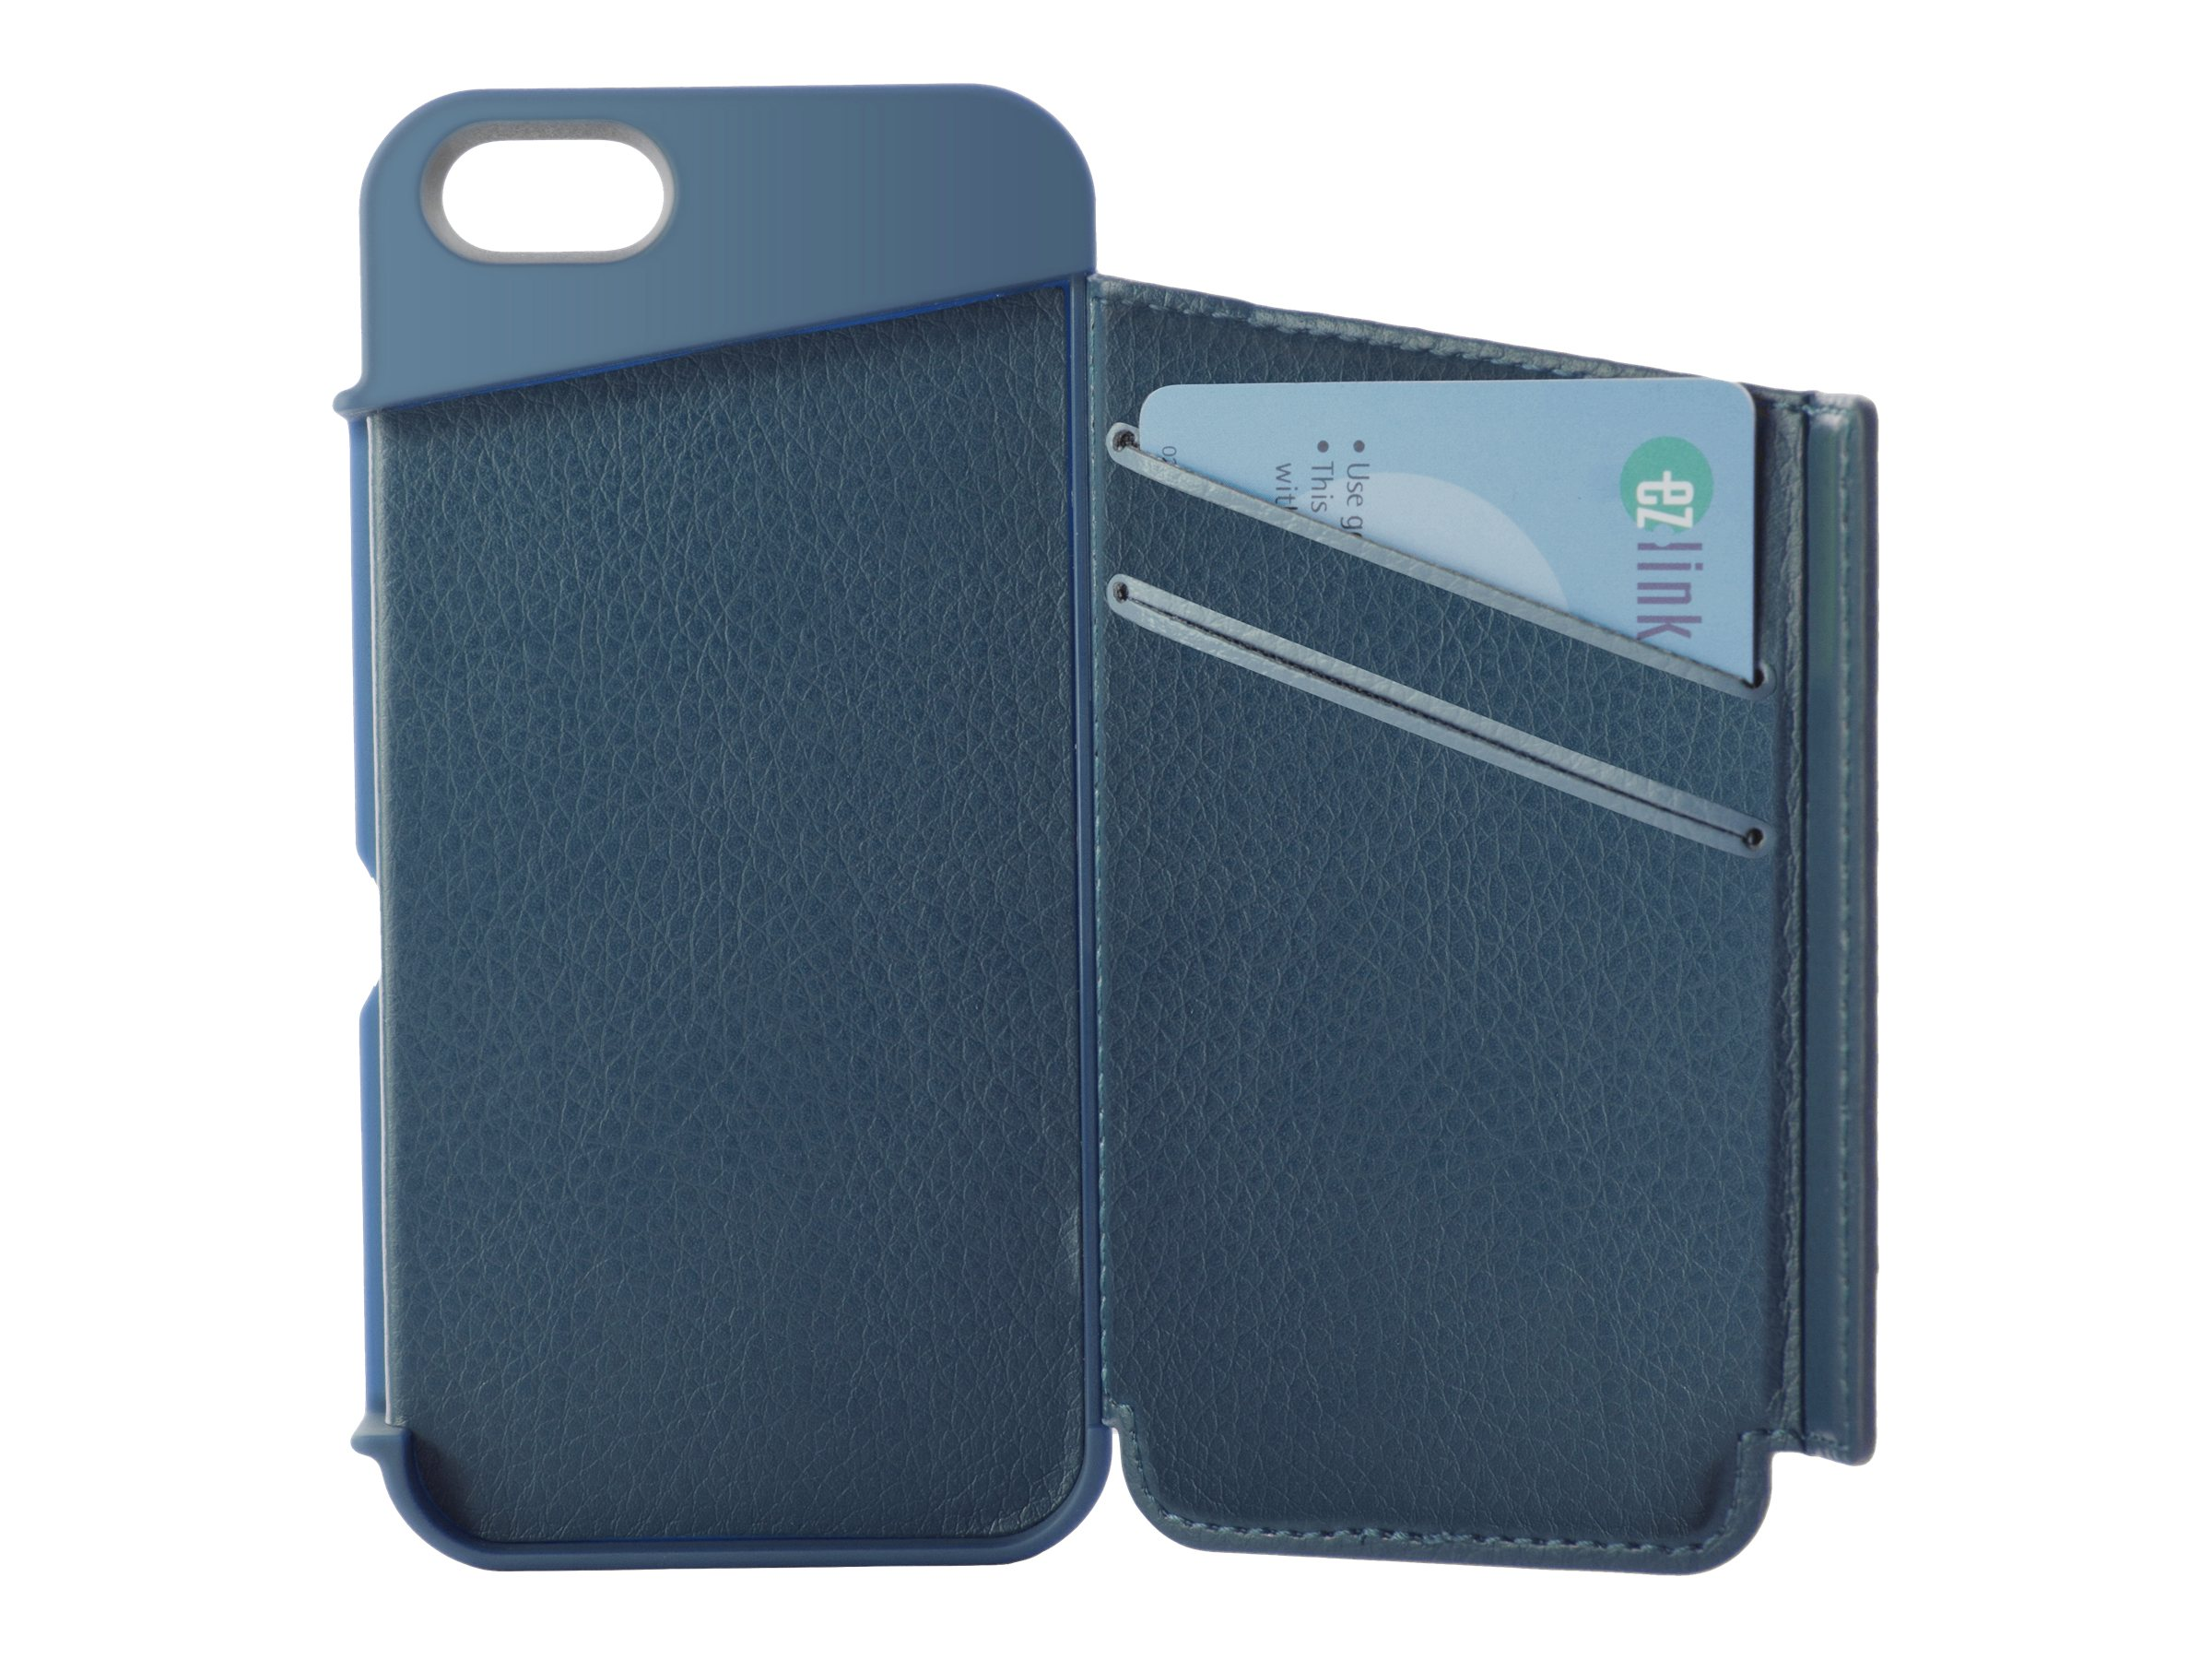 Targus Slidercase for iPhone 5, Blue